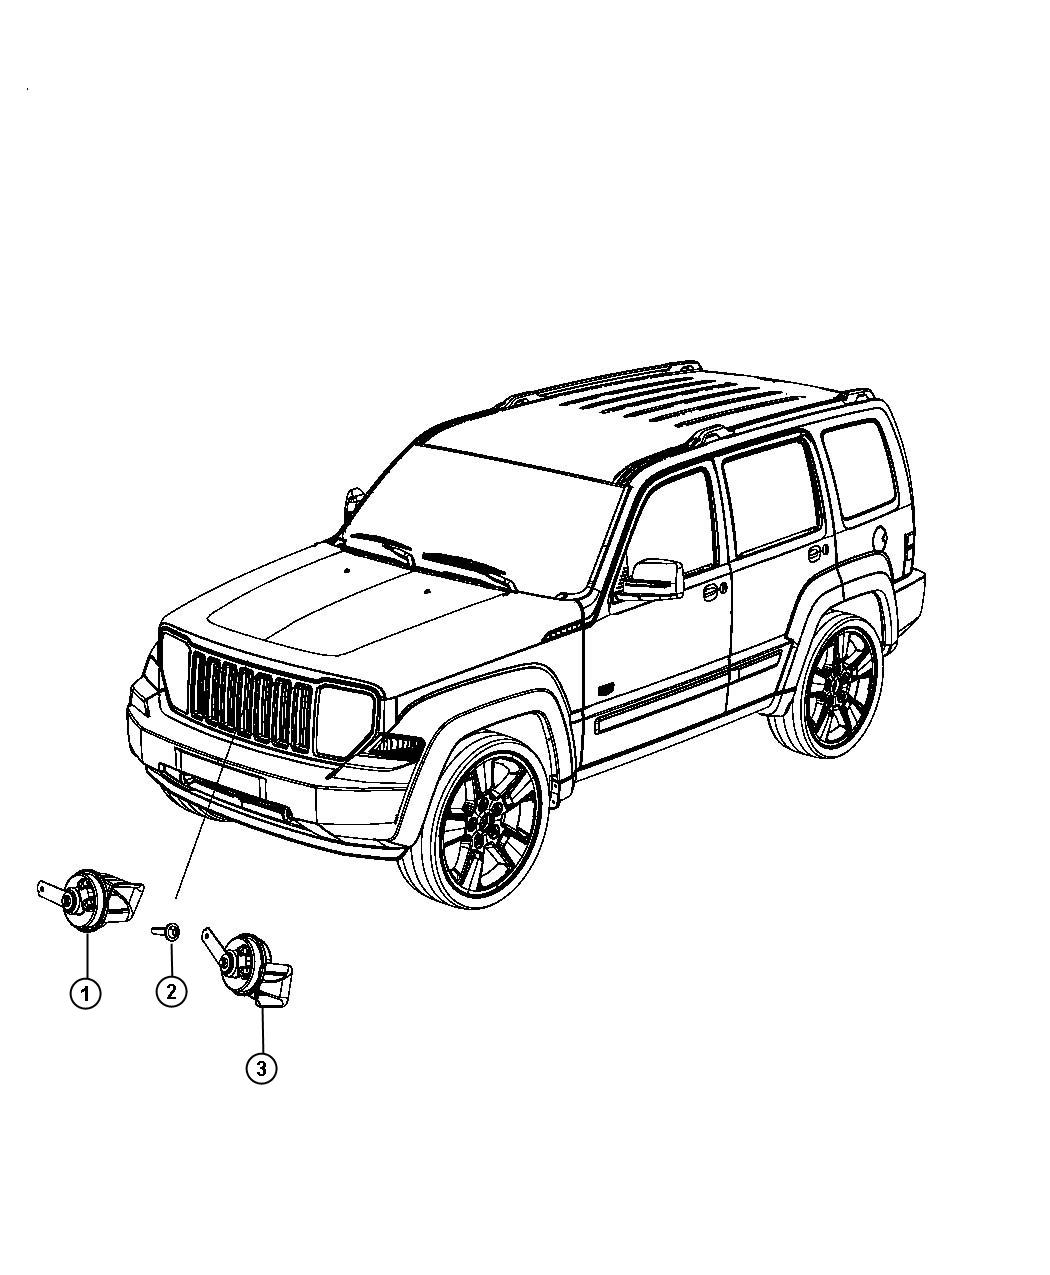 Jeep Liberty Used For Horn And Bracket Low Note